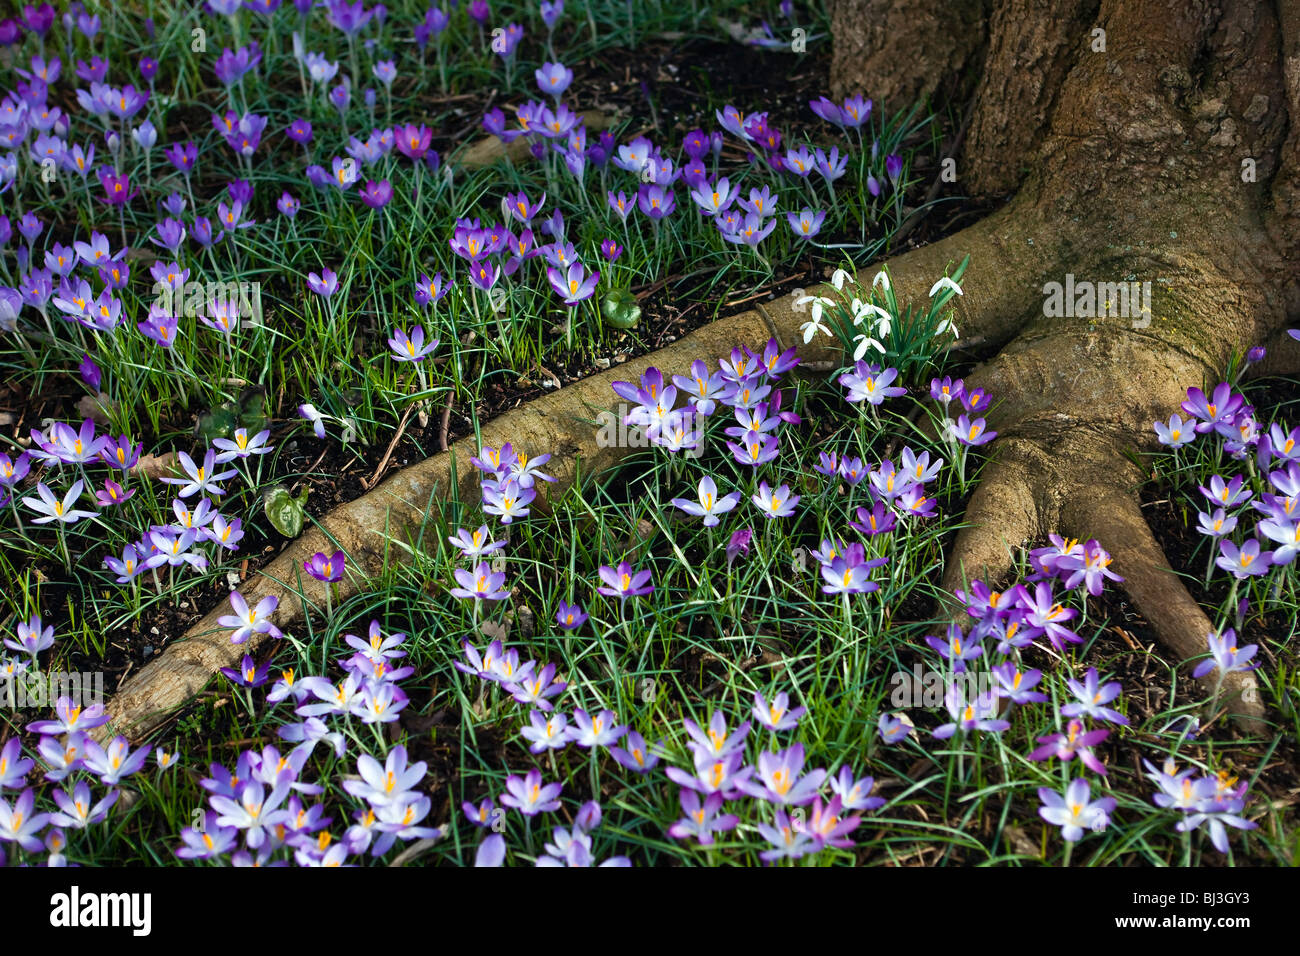 Crocus flowers and snowdrops around a tree root in Kew gardens Stock Photo